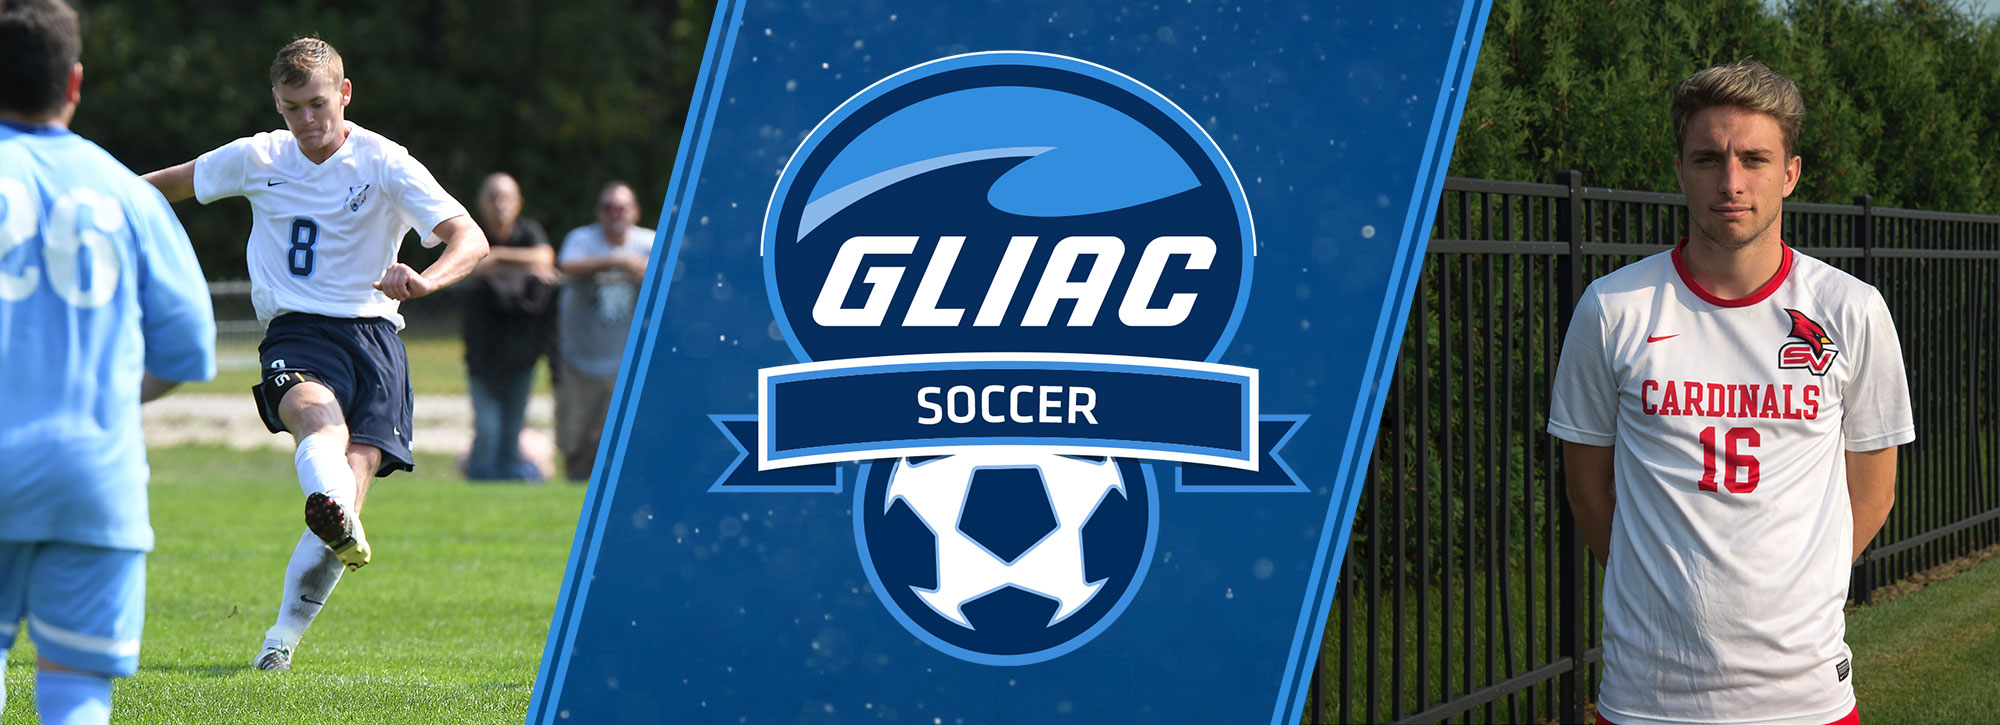 Northwood's Stacey, Saginaw Valley's Wright Collect GLIAC Men's Soccer Weekly Honors